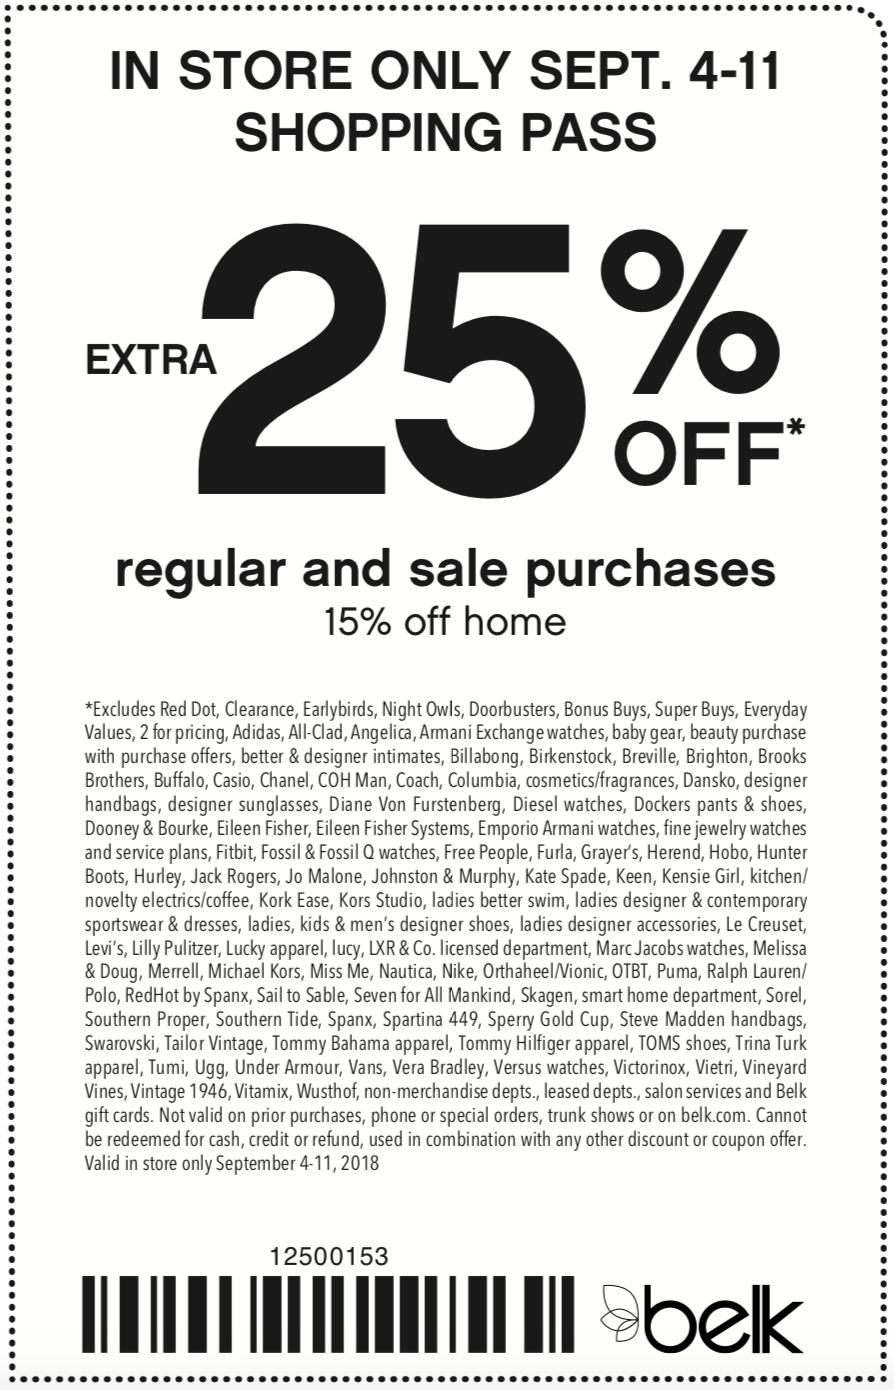 Belk Coupon February 2020 Extra 25% off at Belk